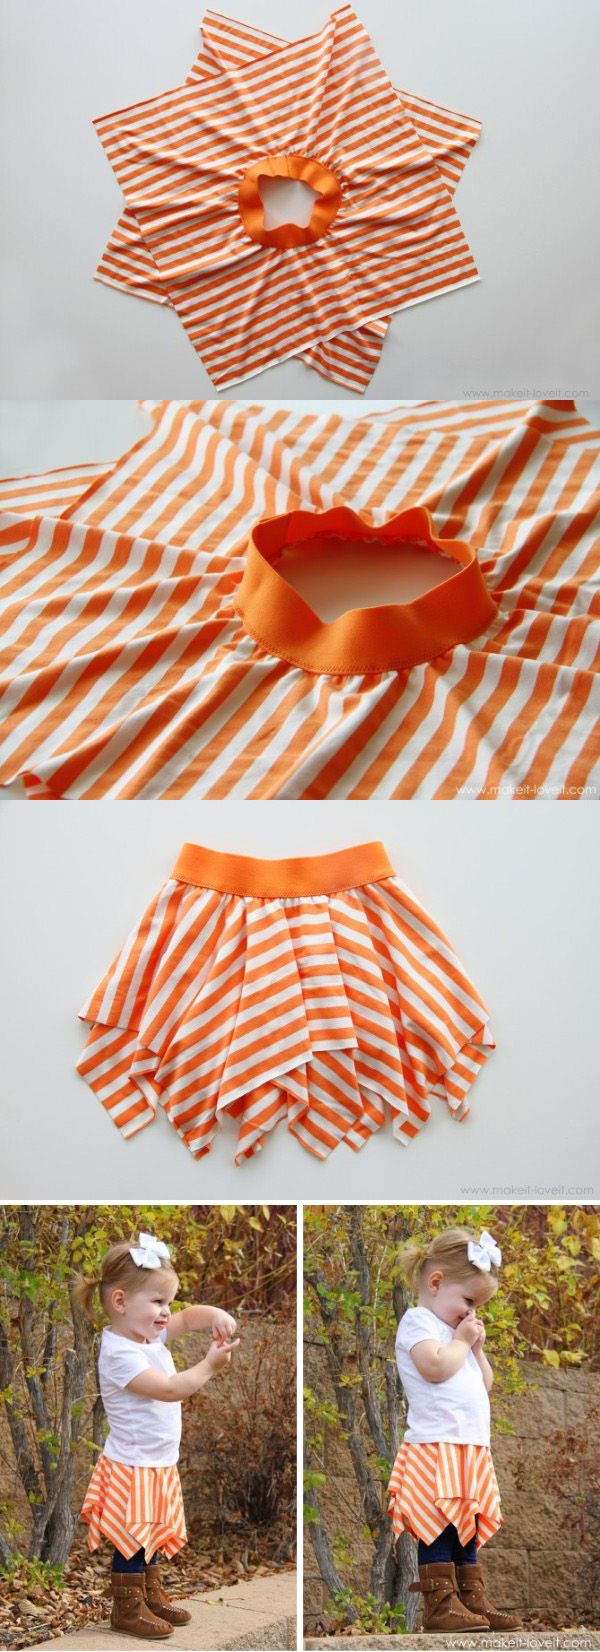 DIY Skirt Tutorial from Make It & Love It